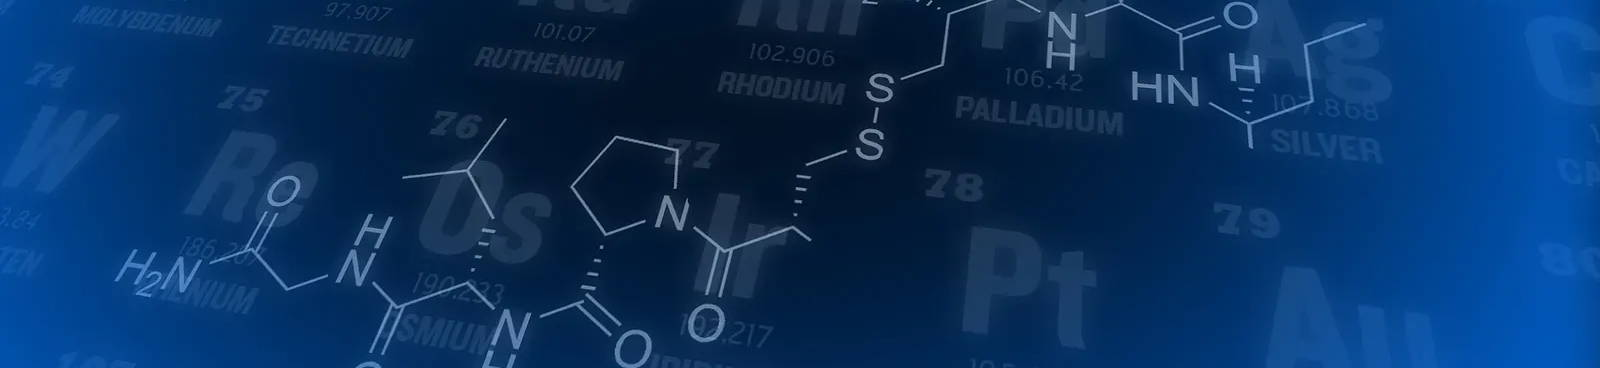 Molecules to show the nutritional science behind GWF Nutrition products